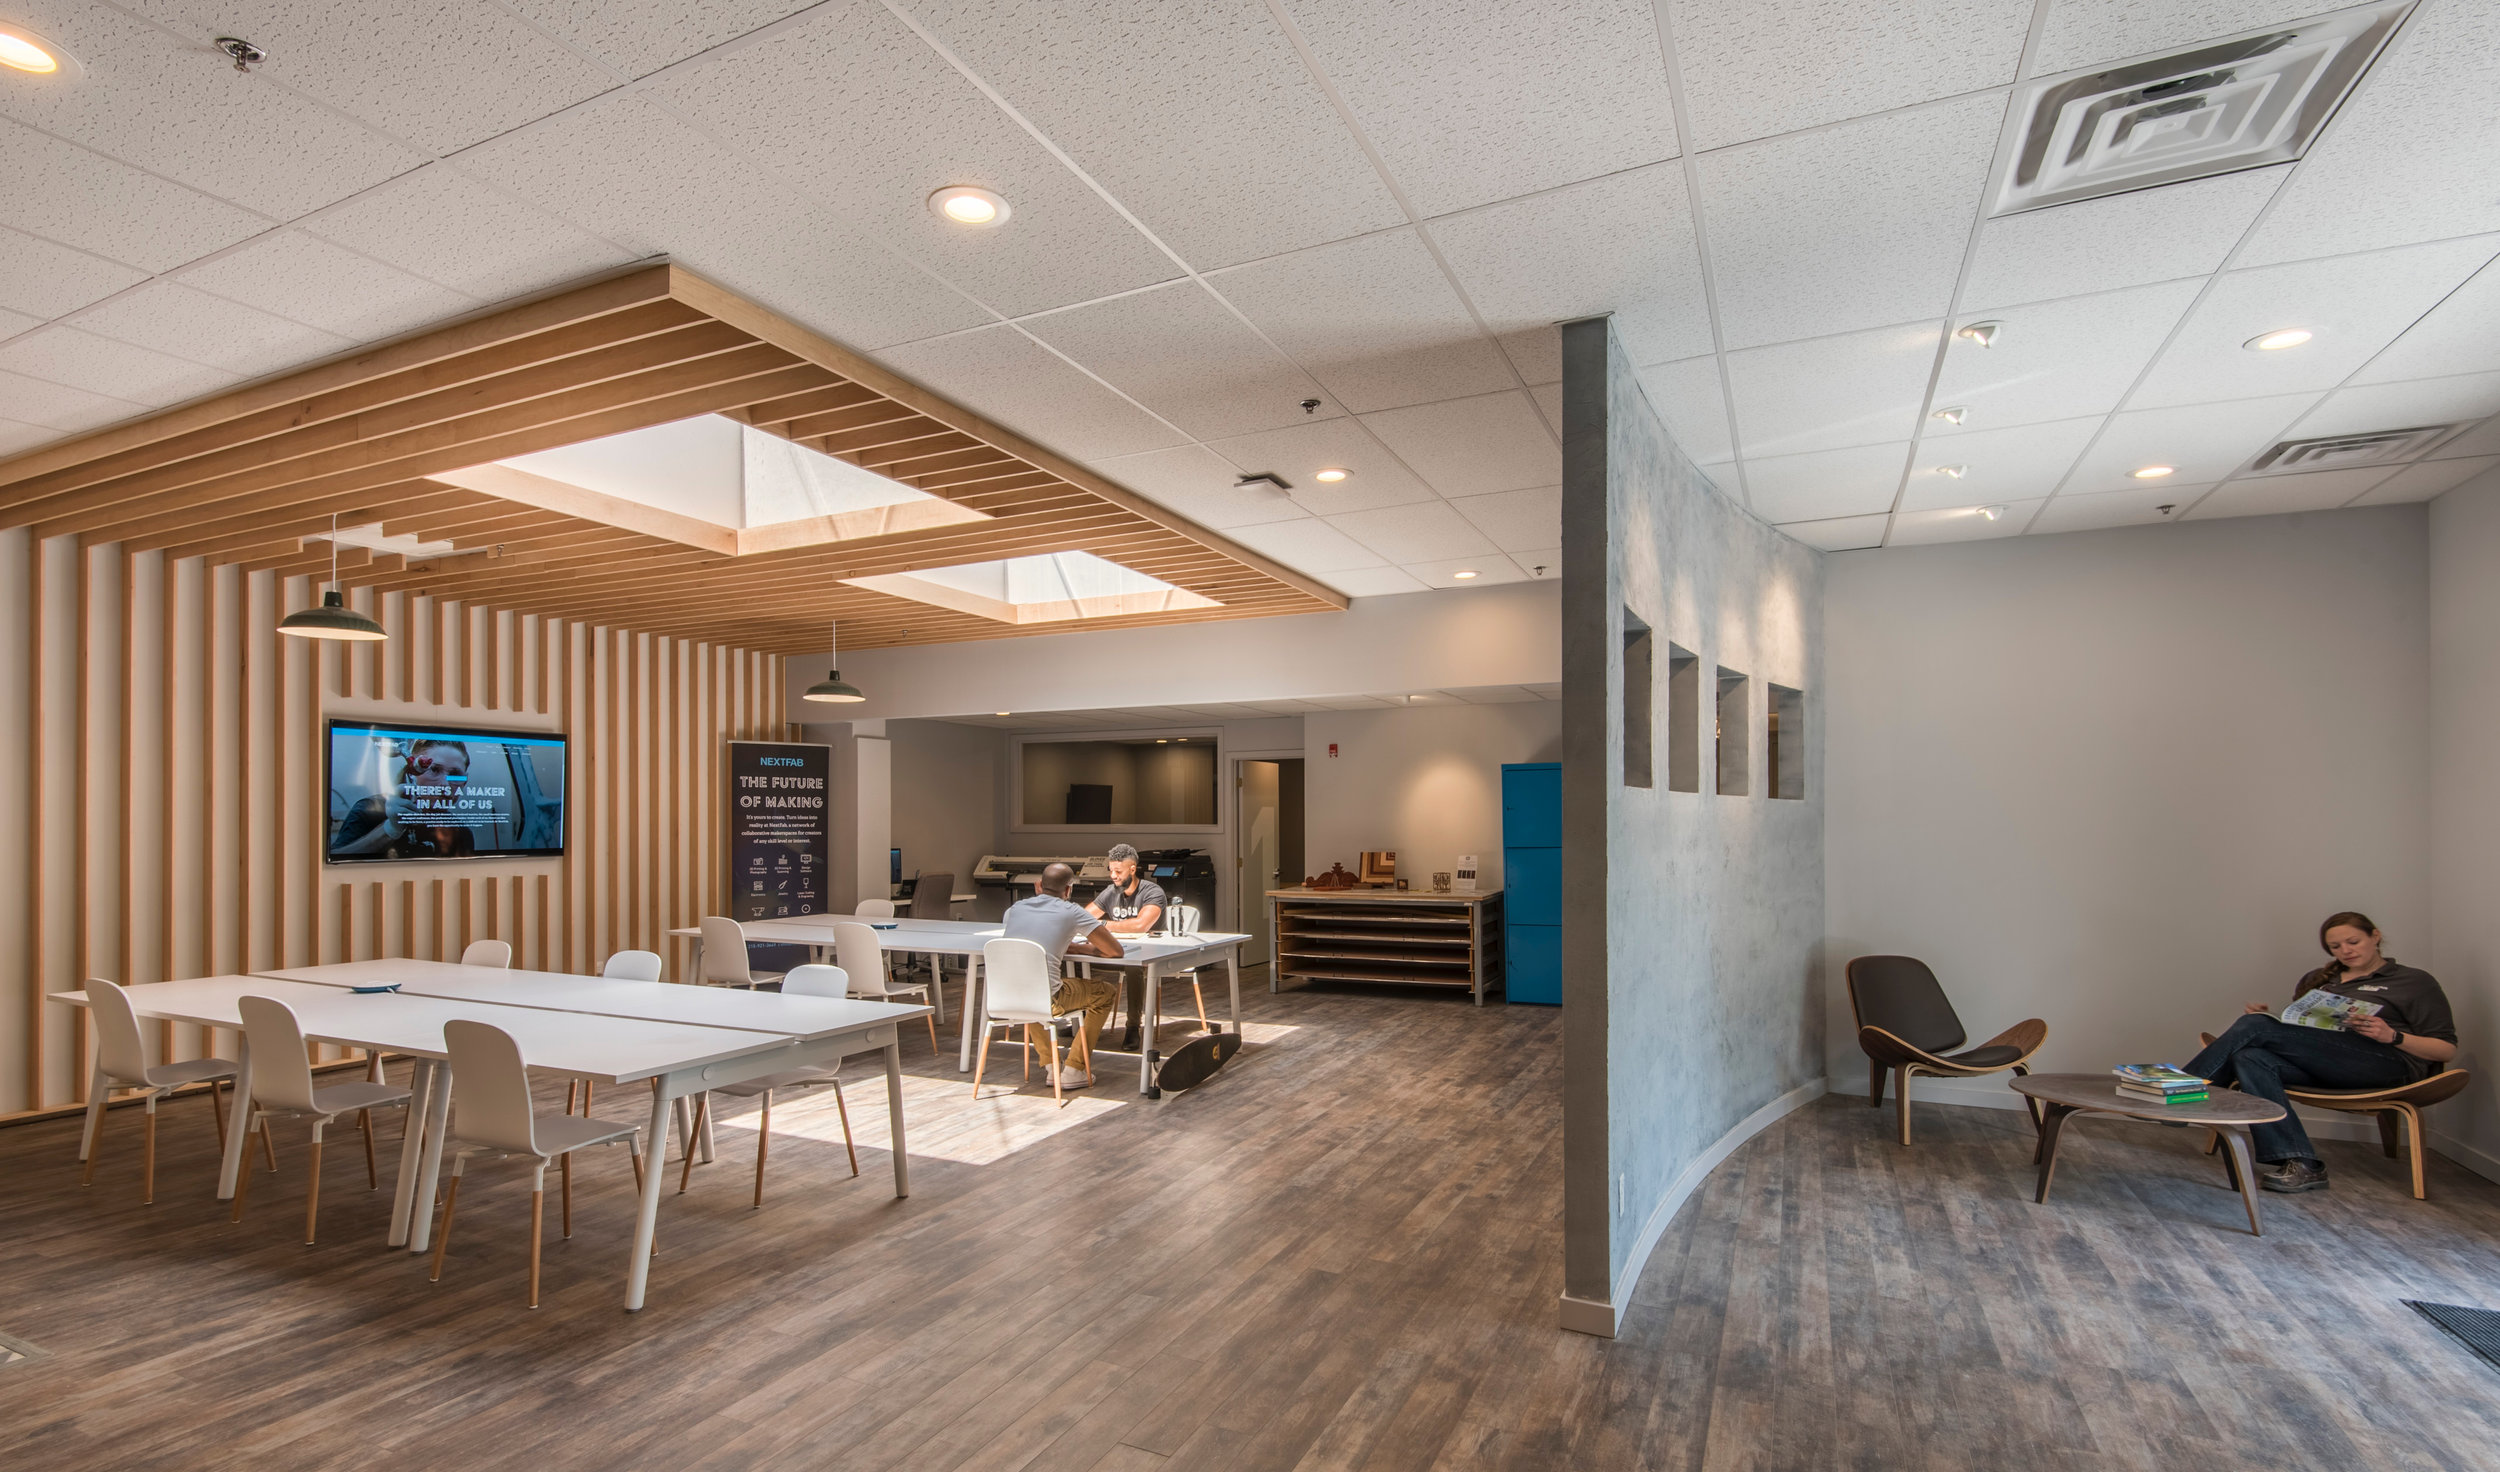 Reception area and coworking space. Photo credit: NextFab